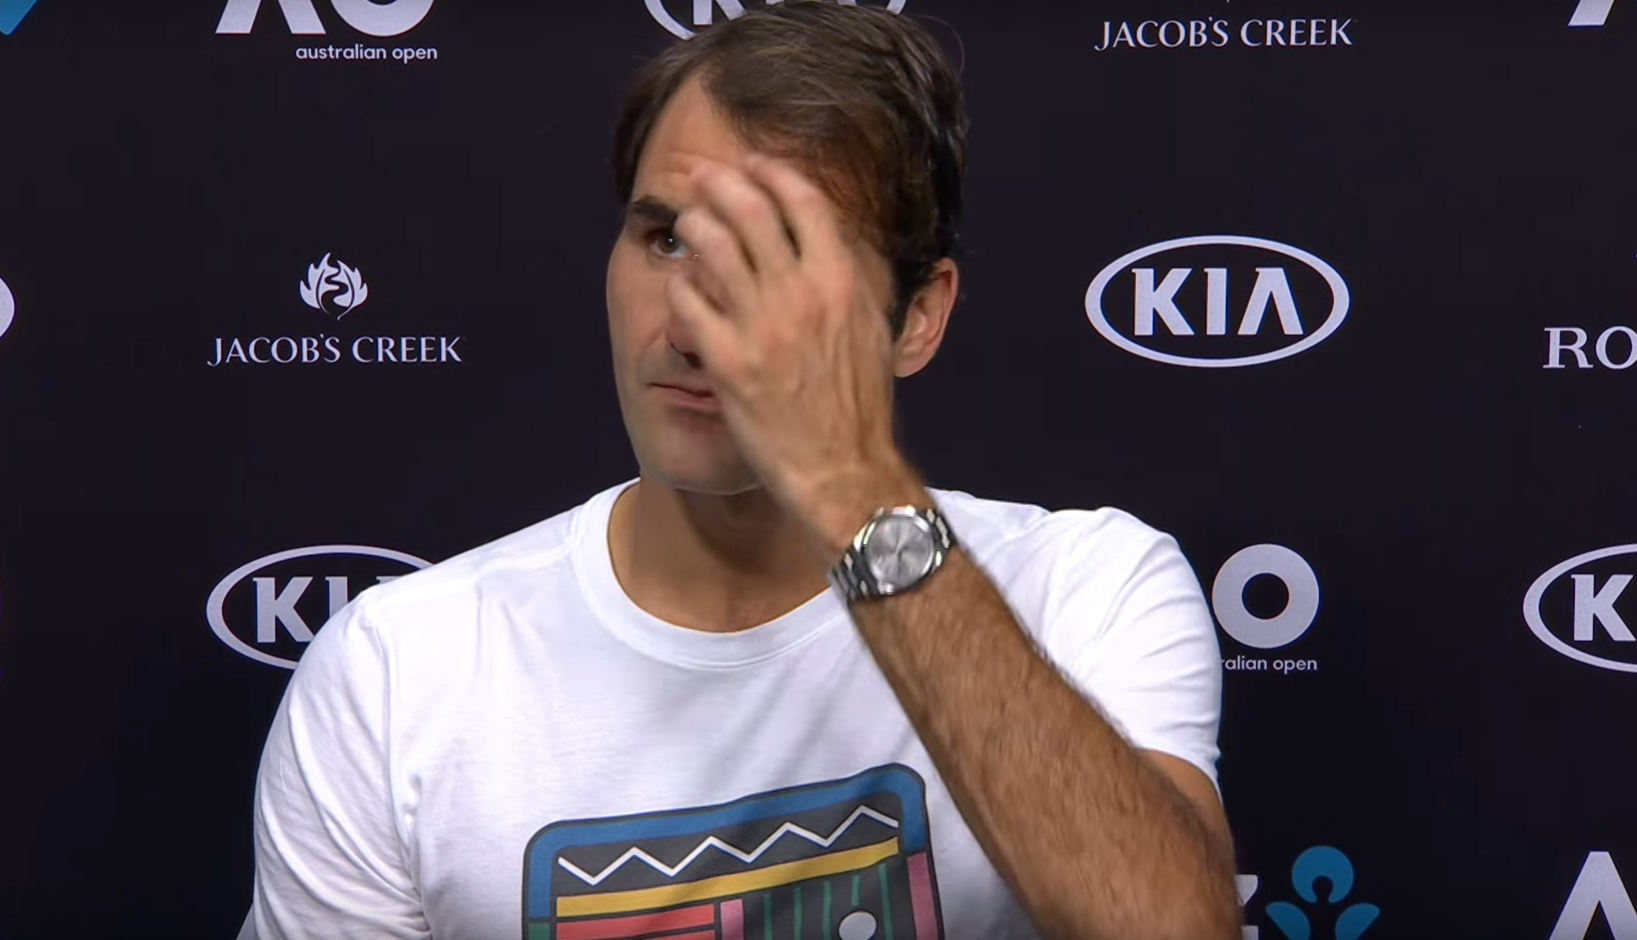 2017 Aus Open Press Roger Federer Rolex DateJust